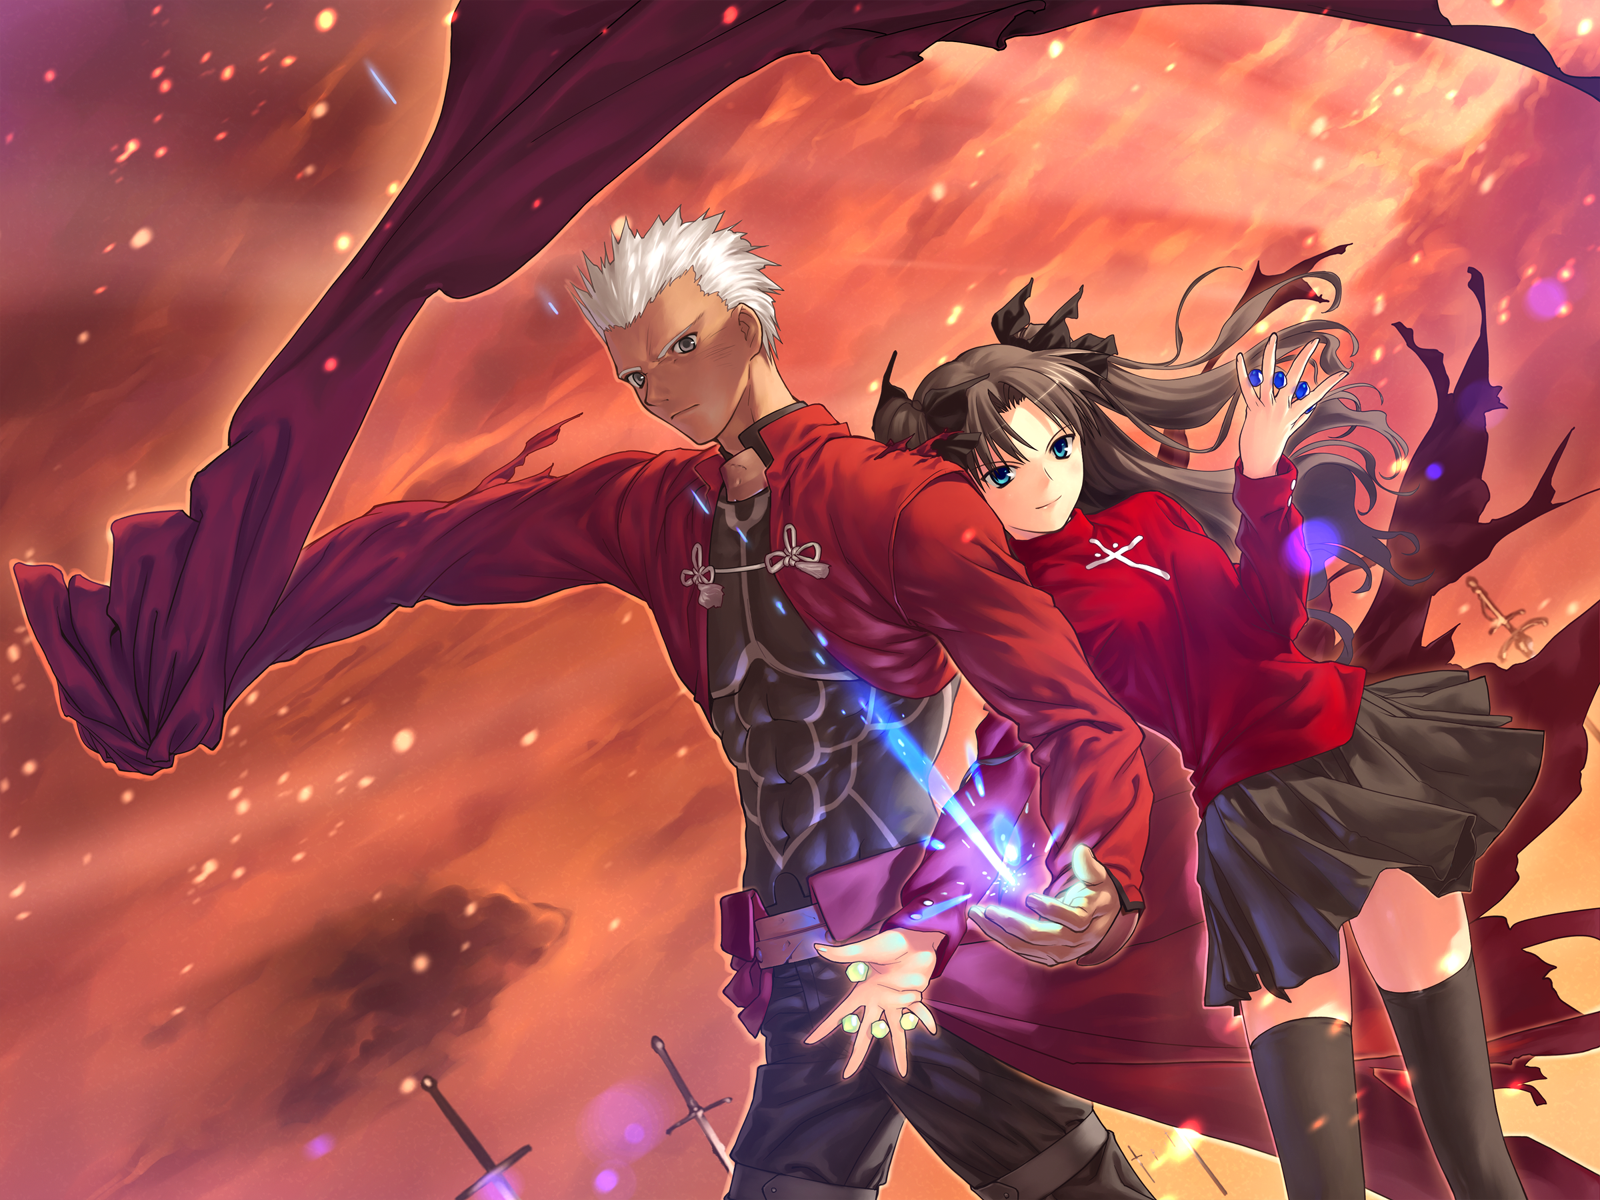 Anime Fate Stay Night Unlimited Blade Works Rin Tohsaka Archer Wallpaper Fate Stay Night Fate Stay Night Rin Poster Prints